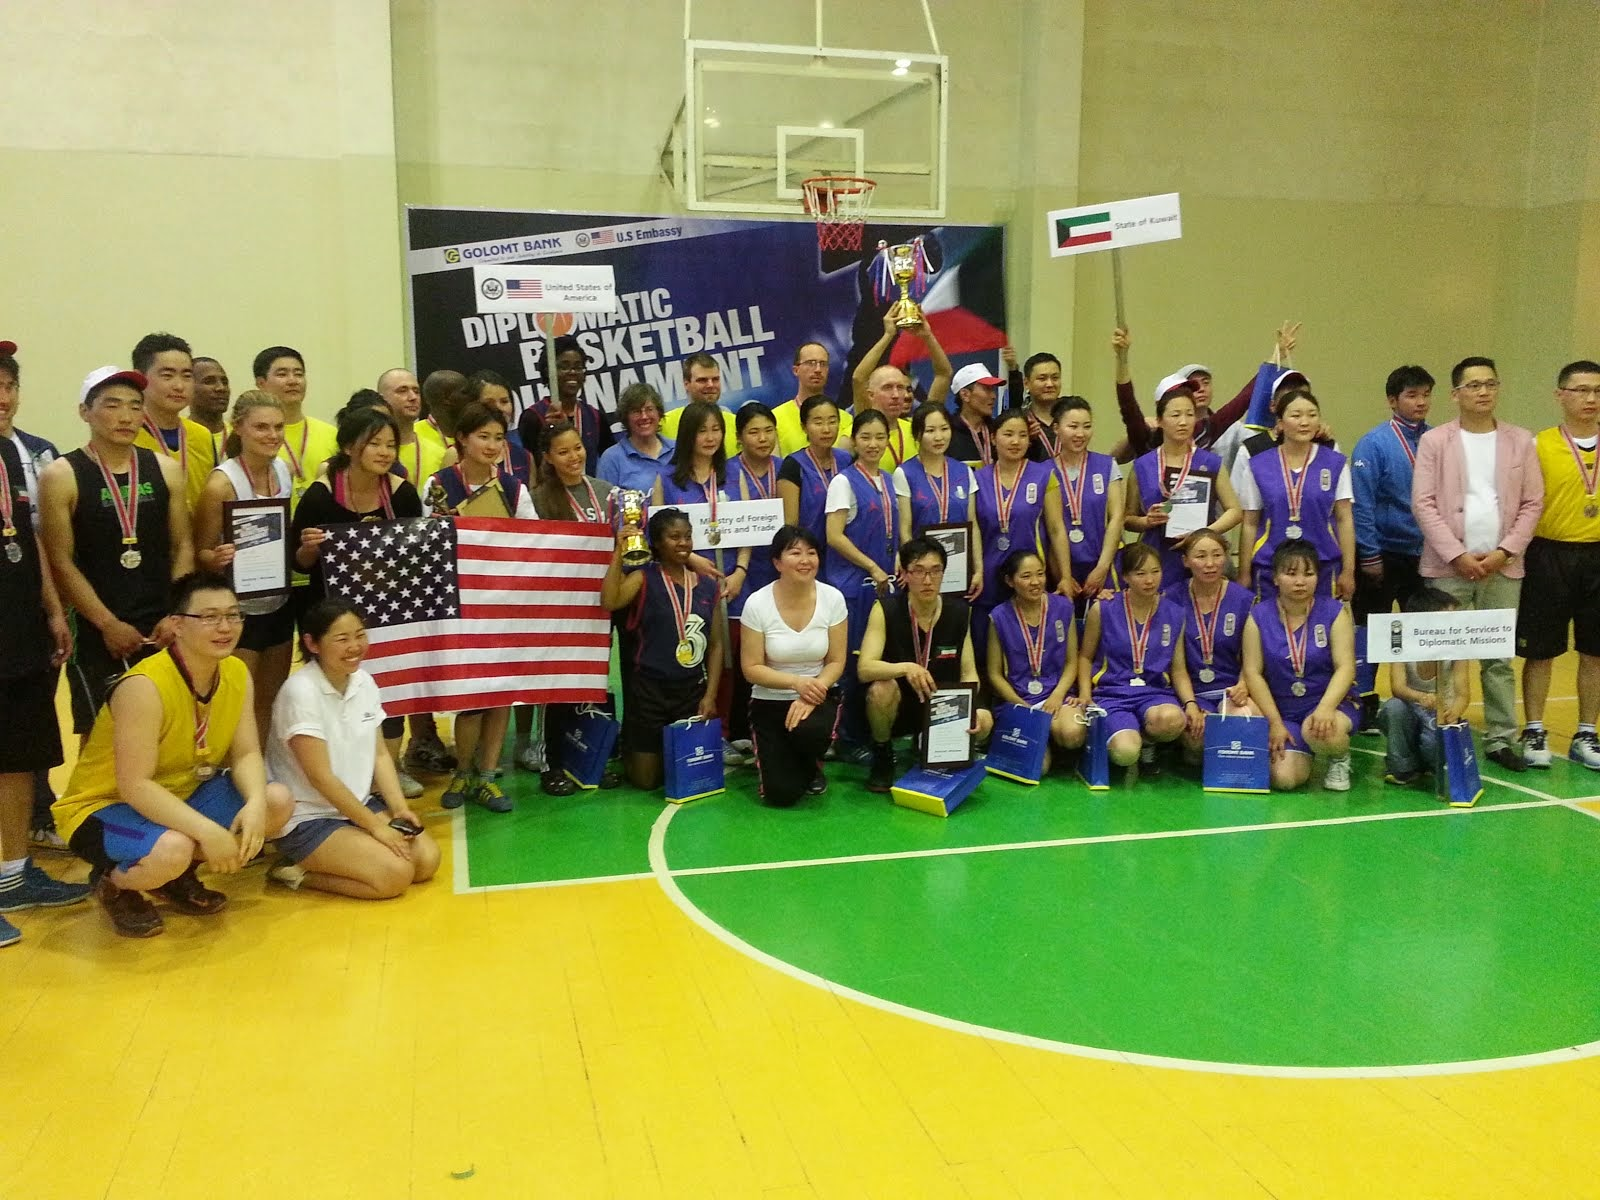 3rd Annual Diplomatic Basketball Tournament